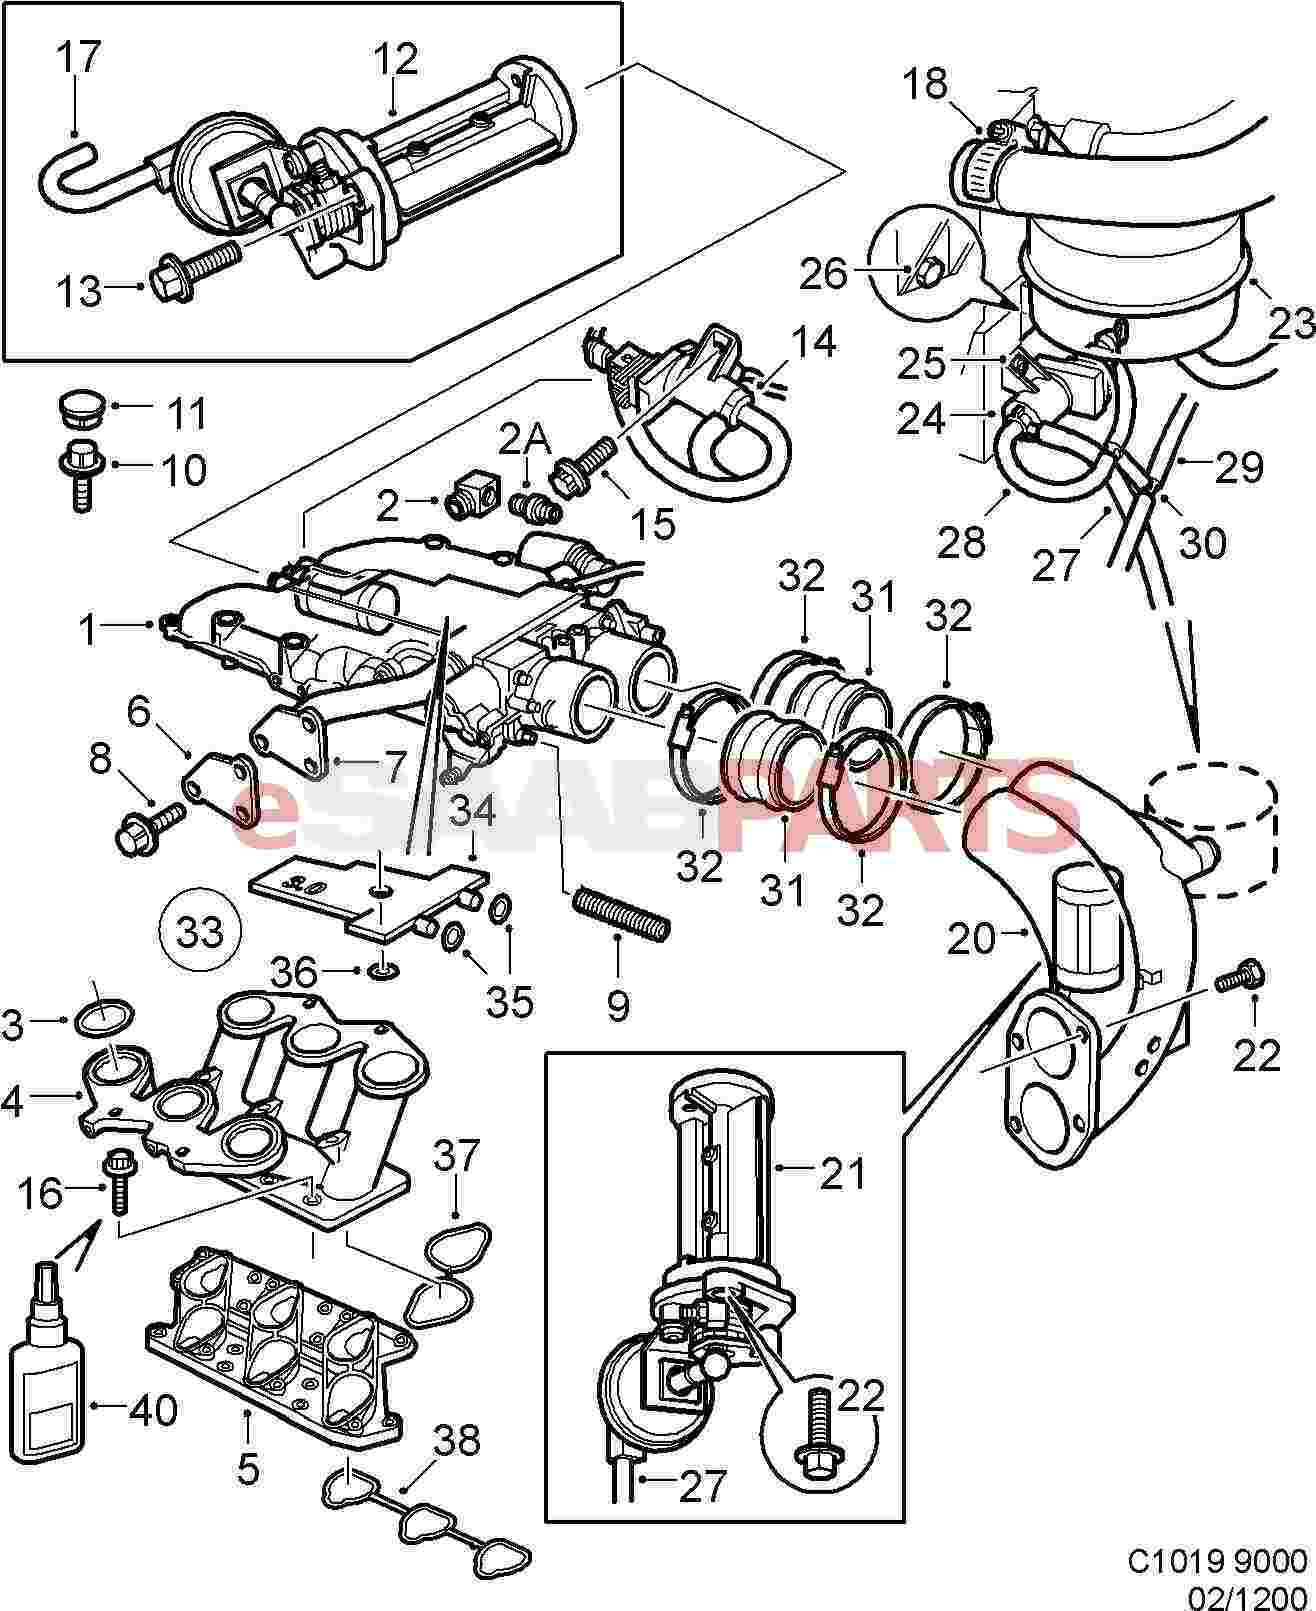 Saab 9000 Engine Diagram Quick Start Guide Of Wiring Pontiac Sunbird Esaabparts Com U003e Parts Internal Inlet Rh 1996 Cs